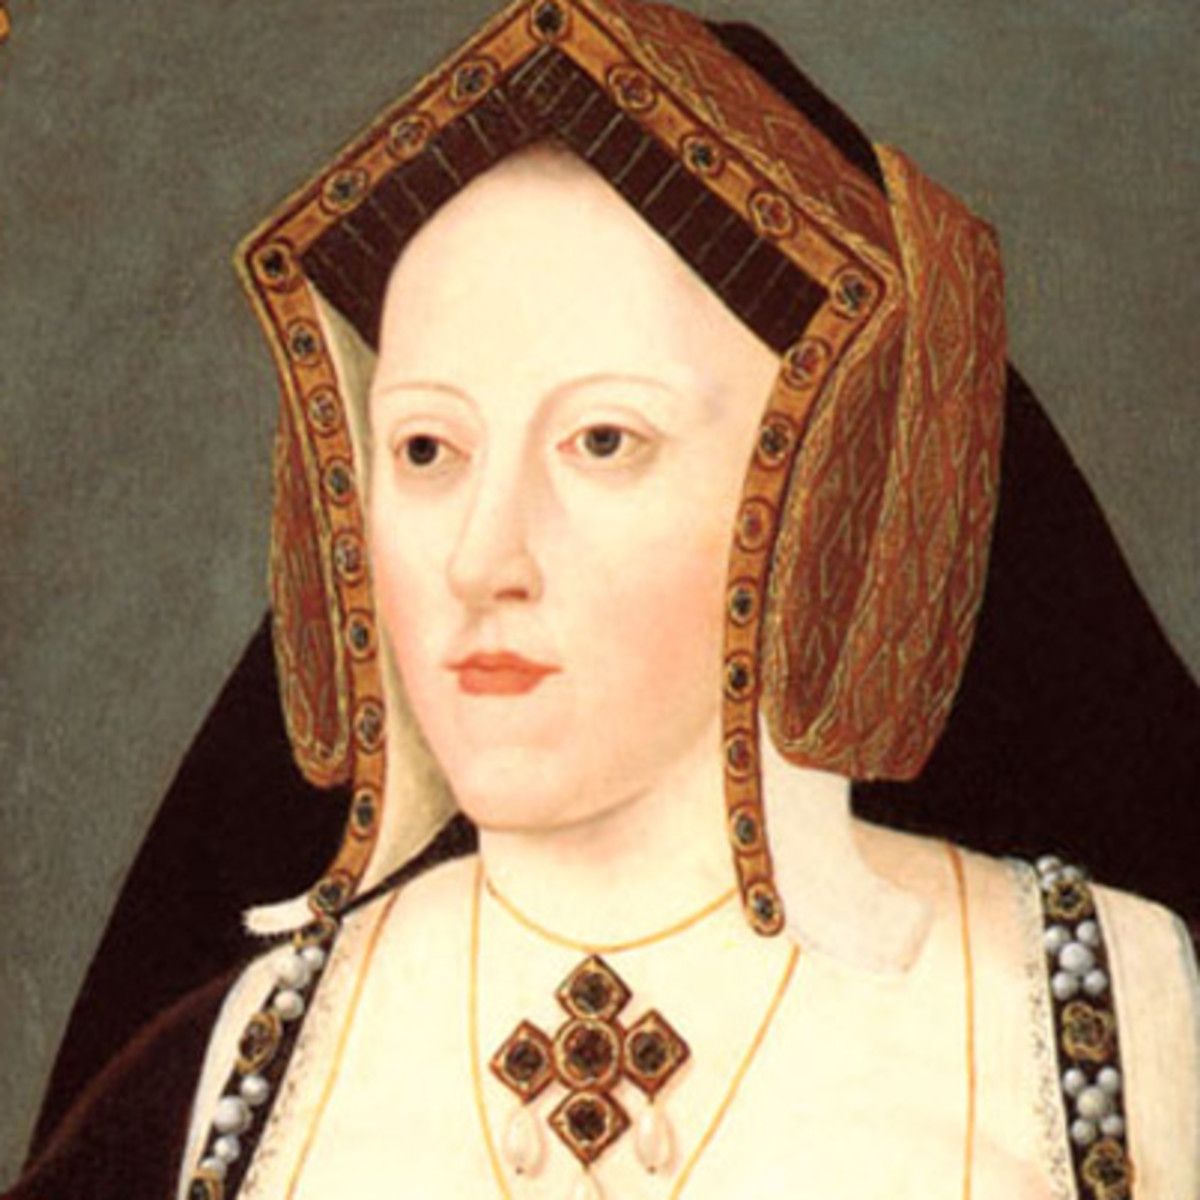 catherine of aragon Shop for customizable catherine of aragon clothing on zazzle check out our t-shirts, polo shirts, hoodies, & more great items start browsing today.